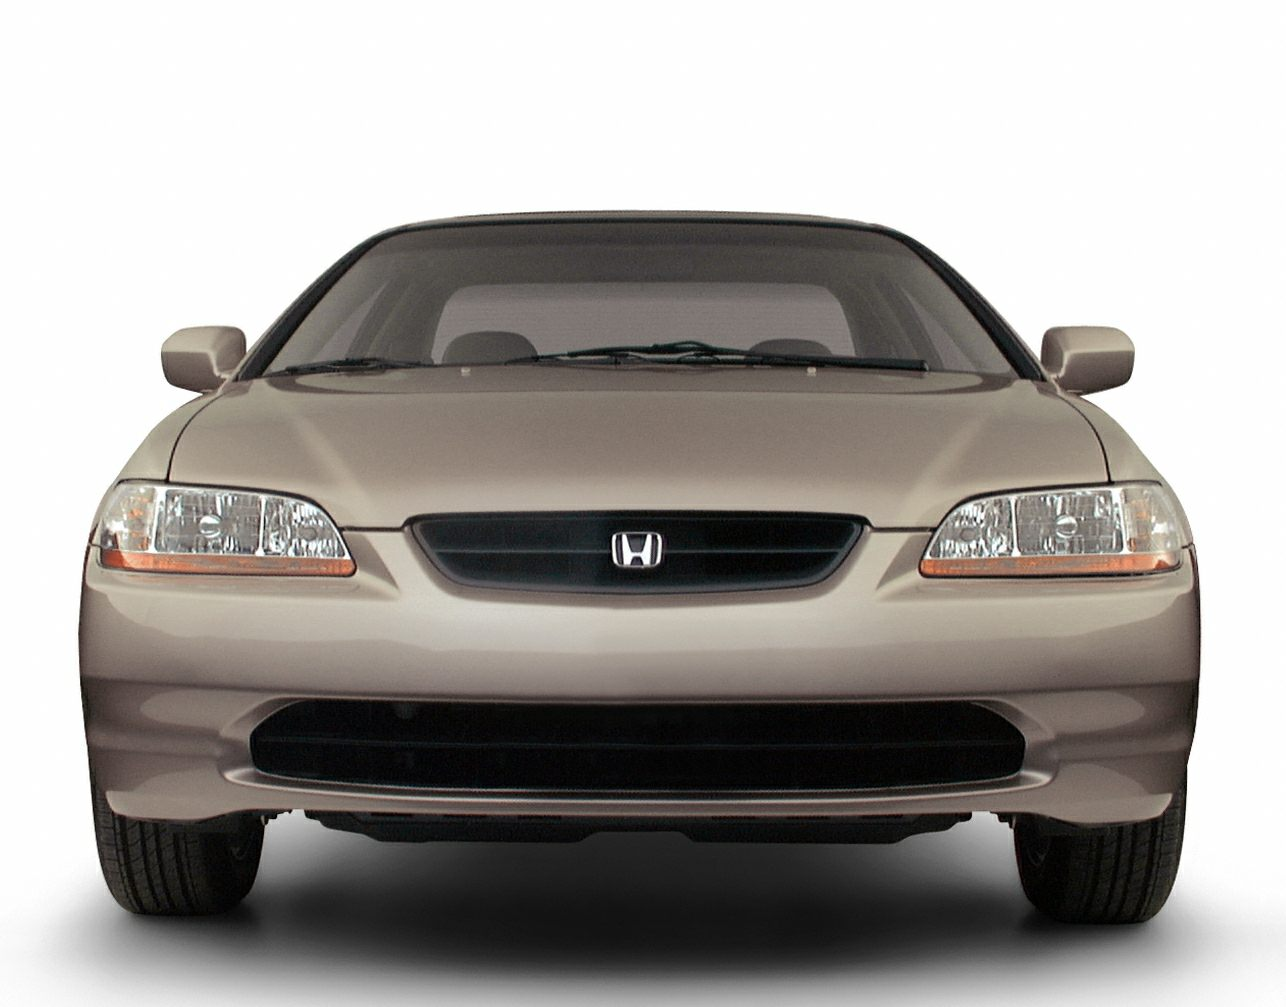 2000 honda accord 3 0 ex w leather 2dr coupe pictures. Black Bedroom Furniture Sets. Home Design Ideas